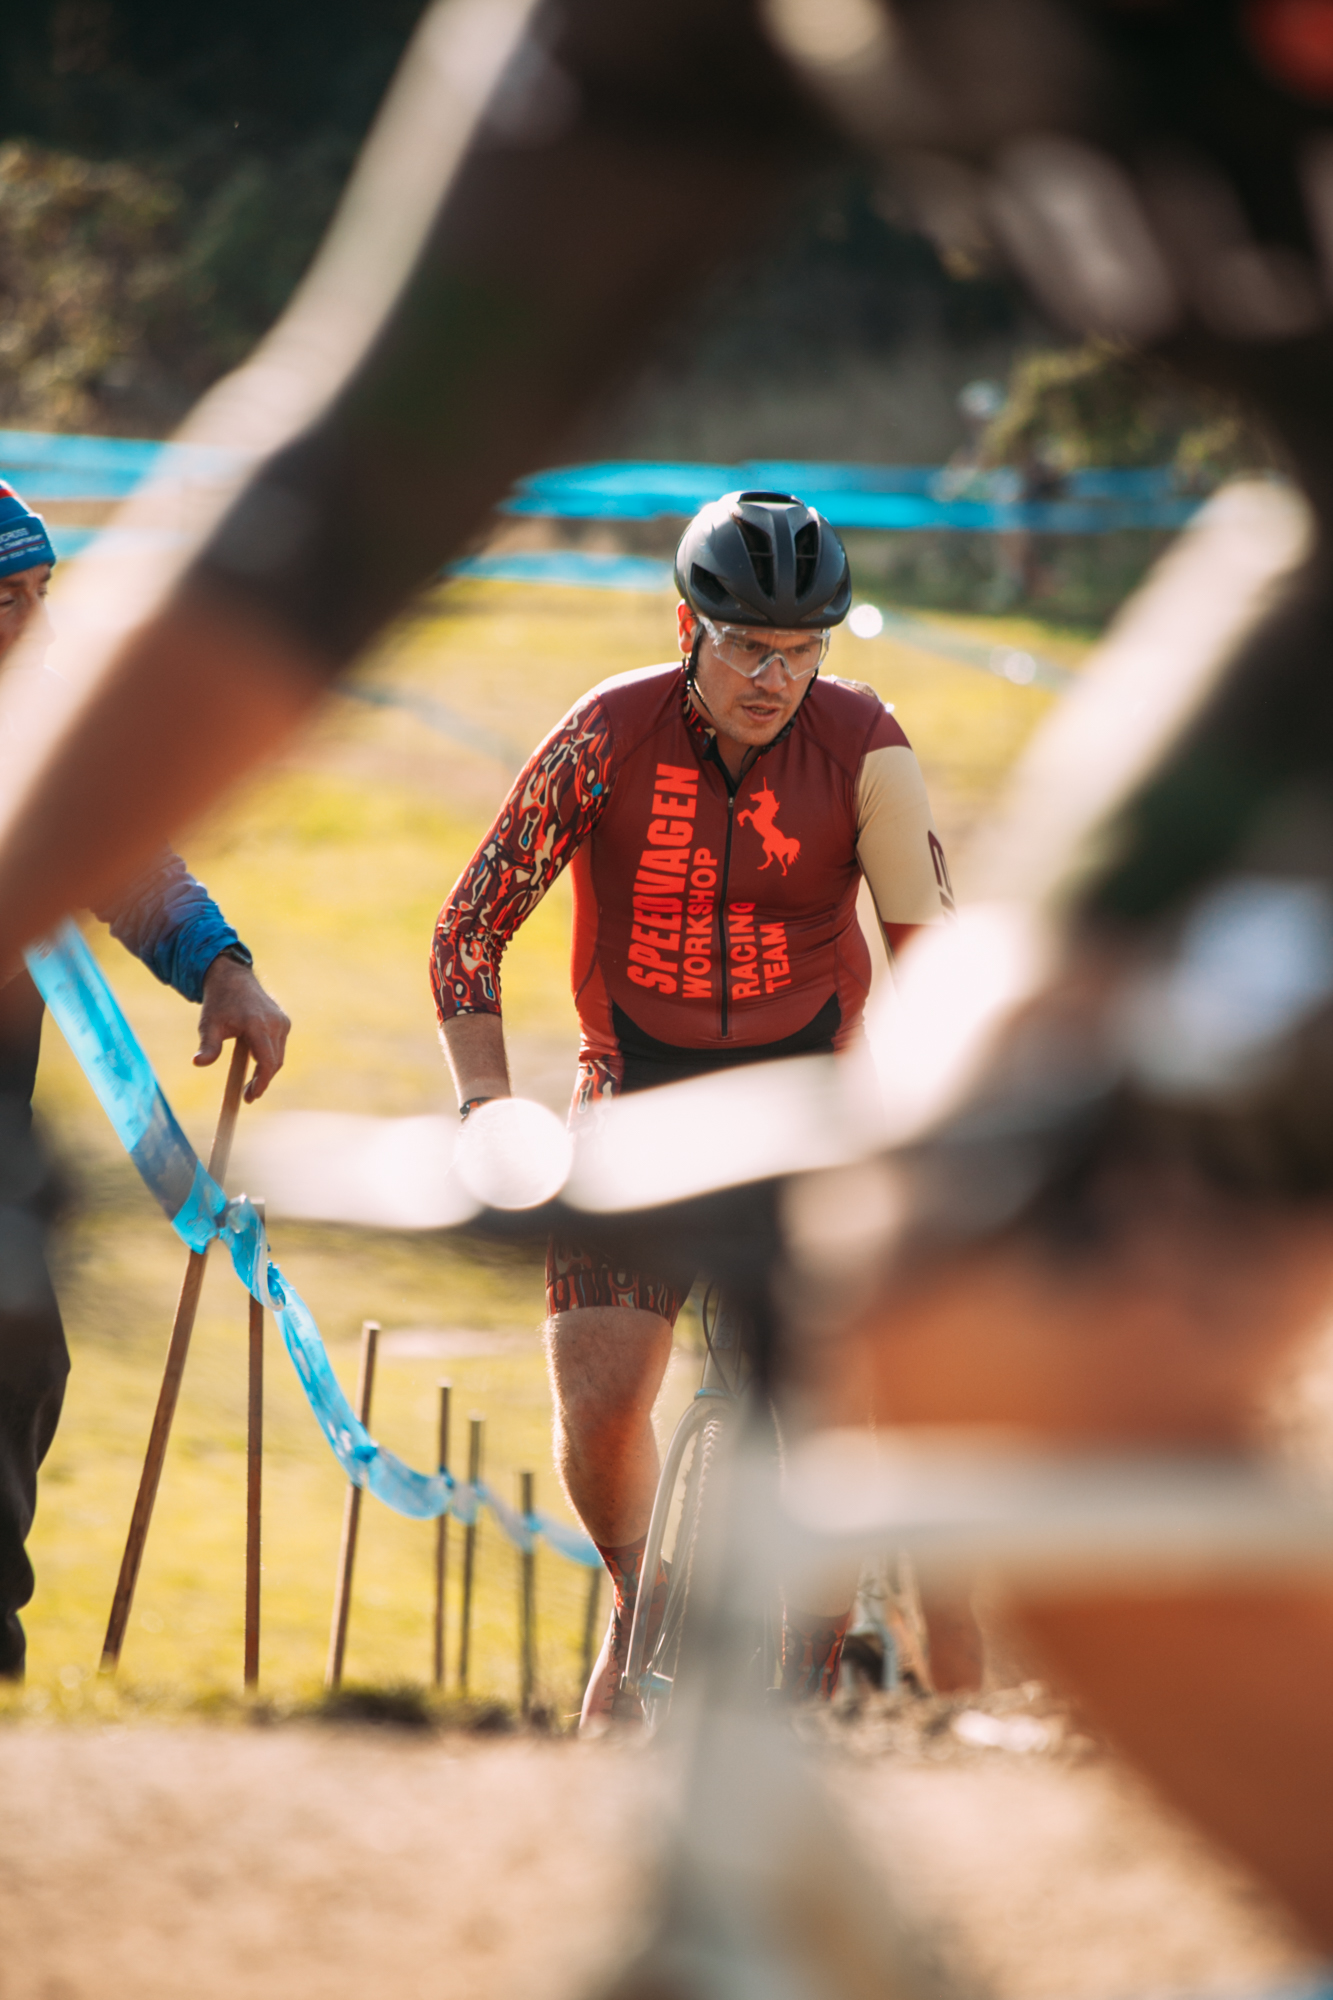 Cyclocross18_CCCX_RainierHS-187-mettlecycling.jpg